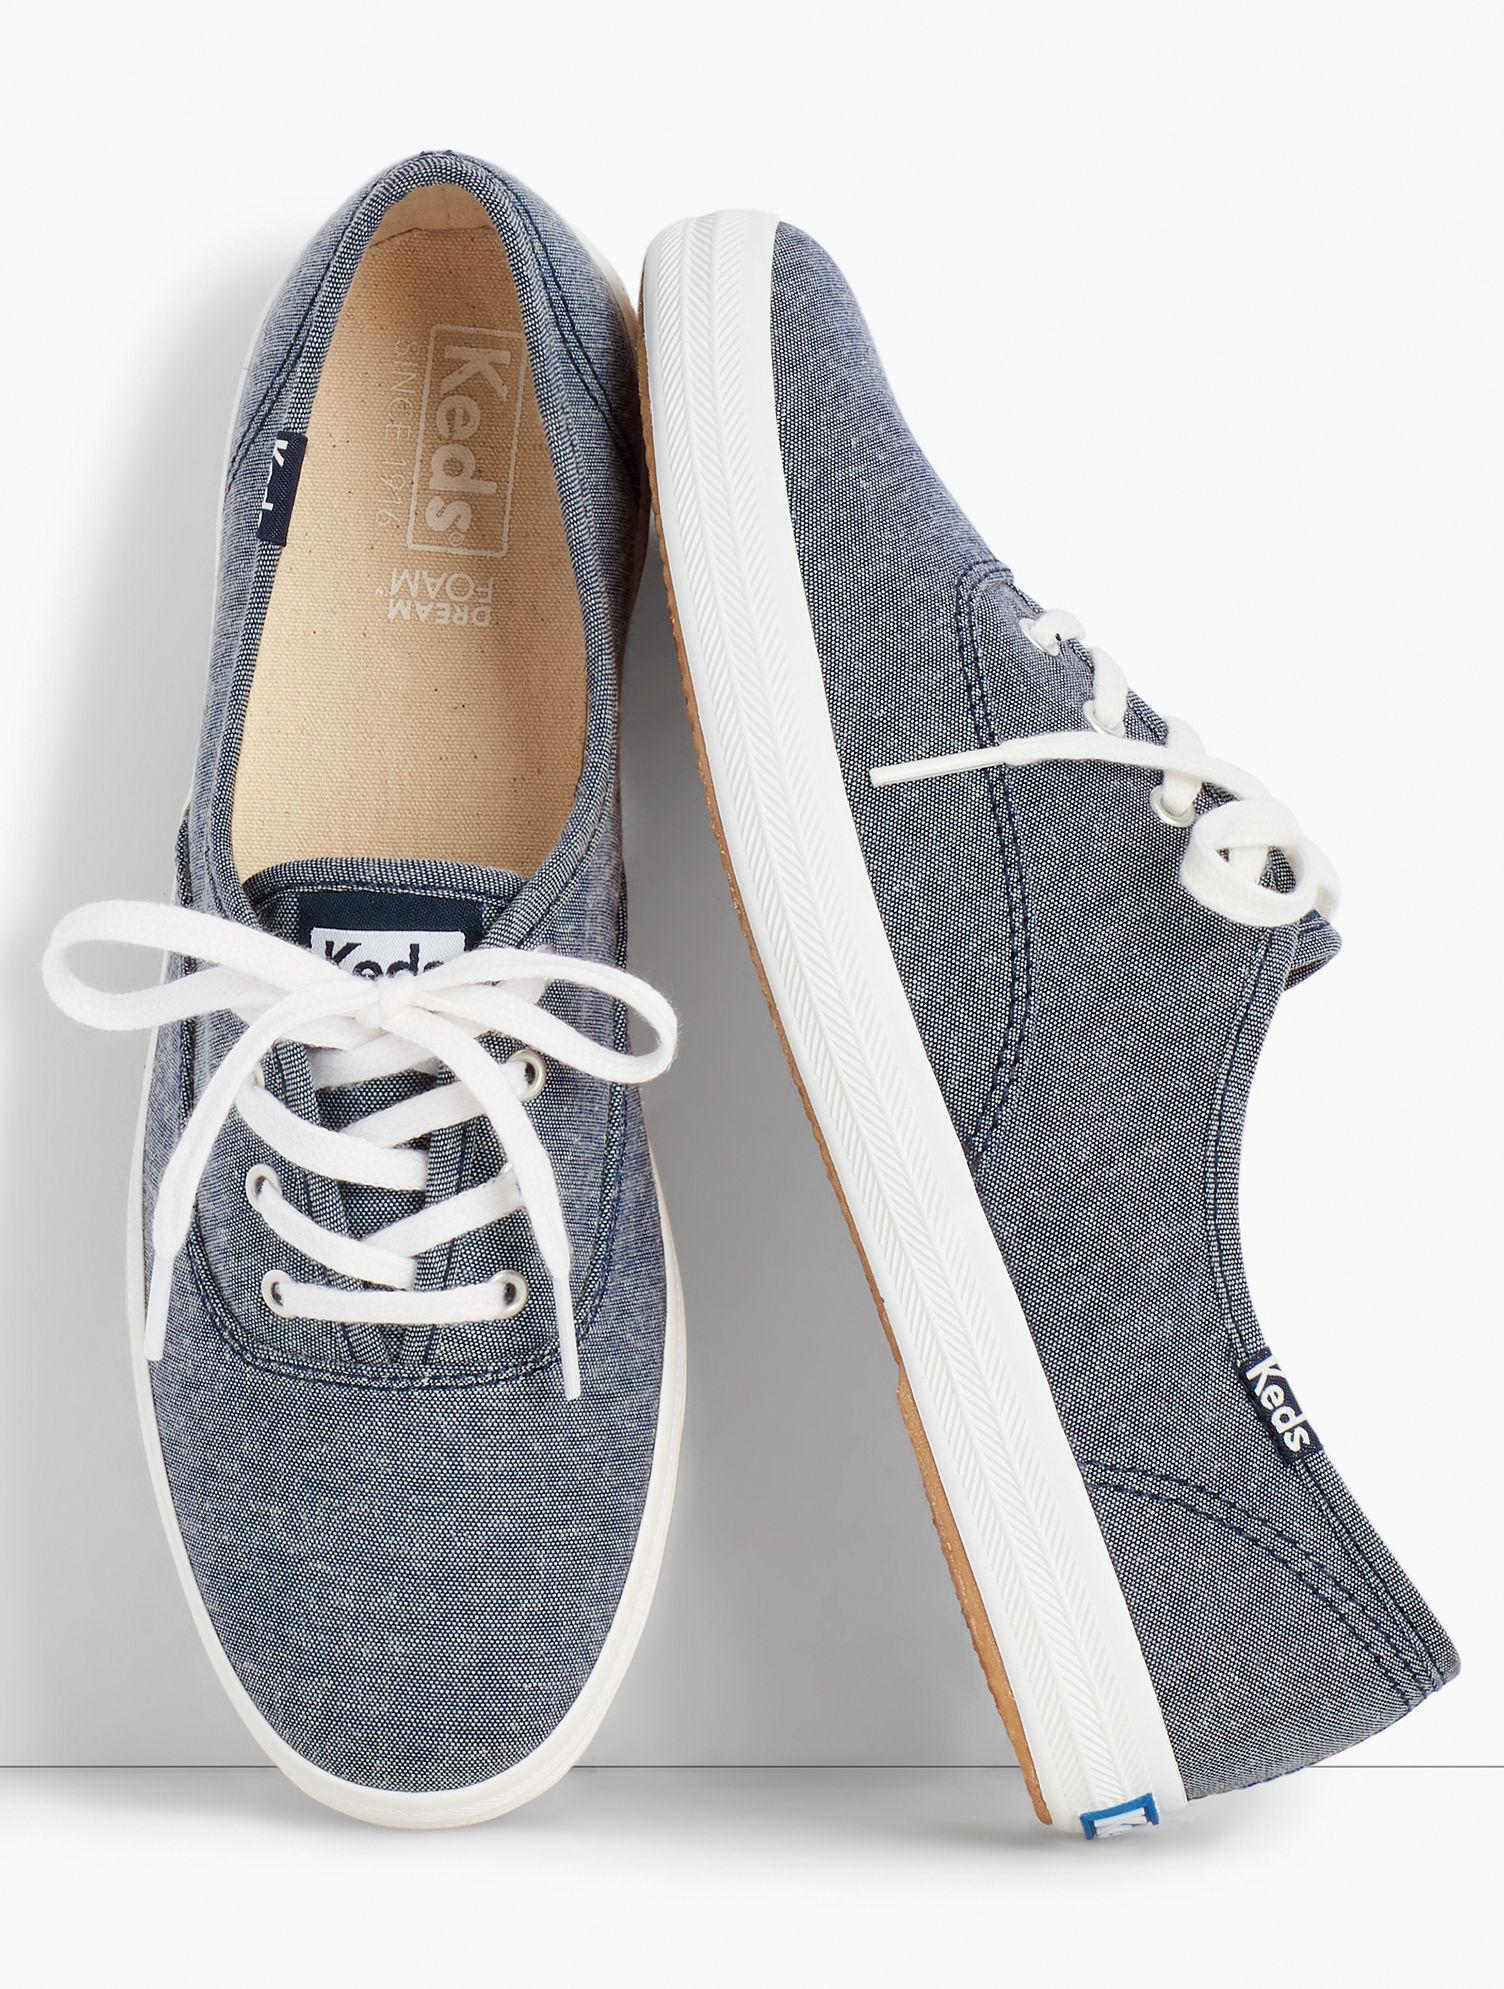 ed8c123892be4 Lyst - Talbots Keds(tm) Champion Sneakers in Blue